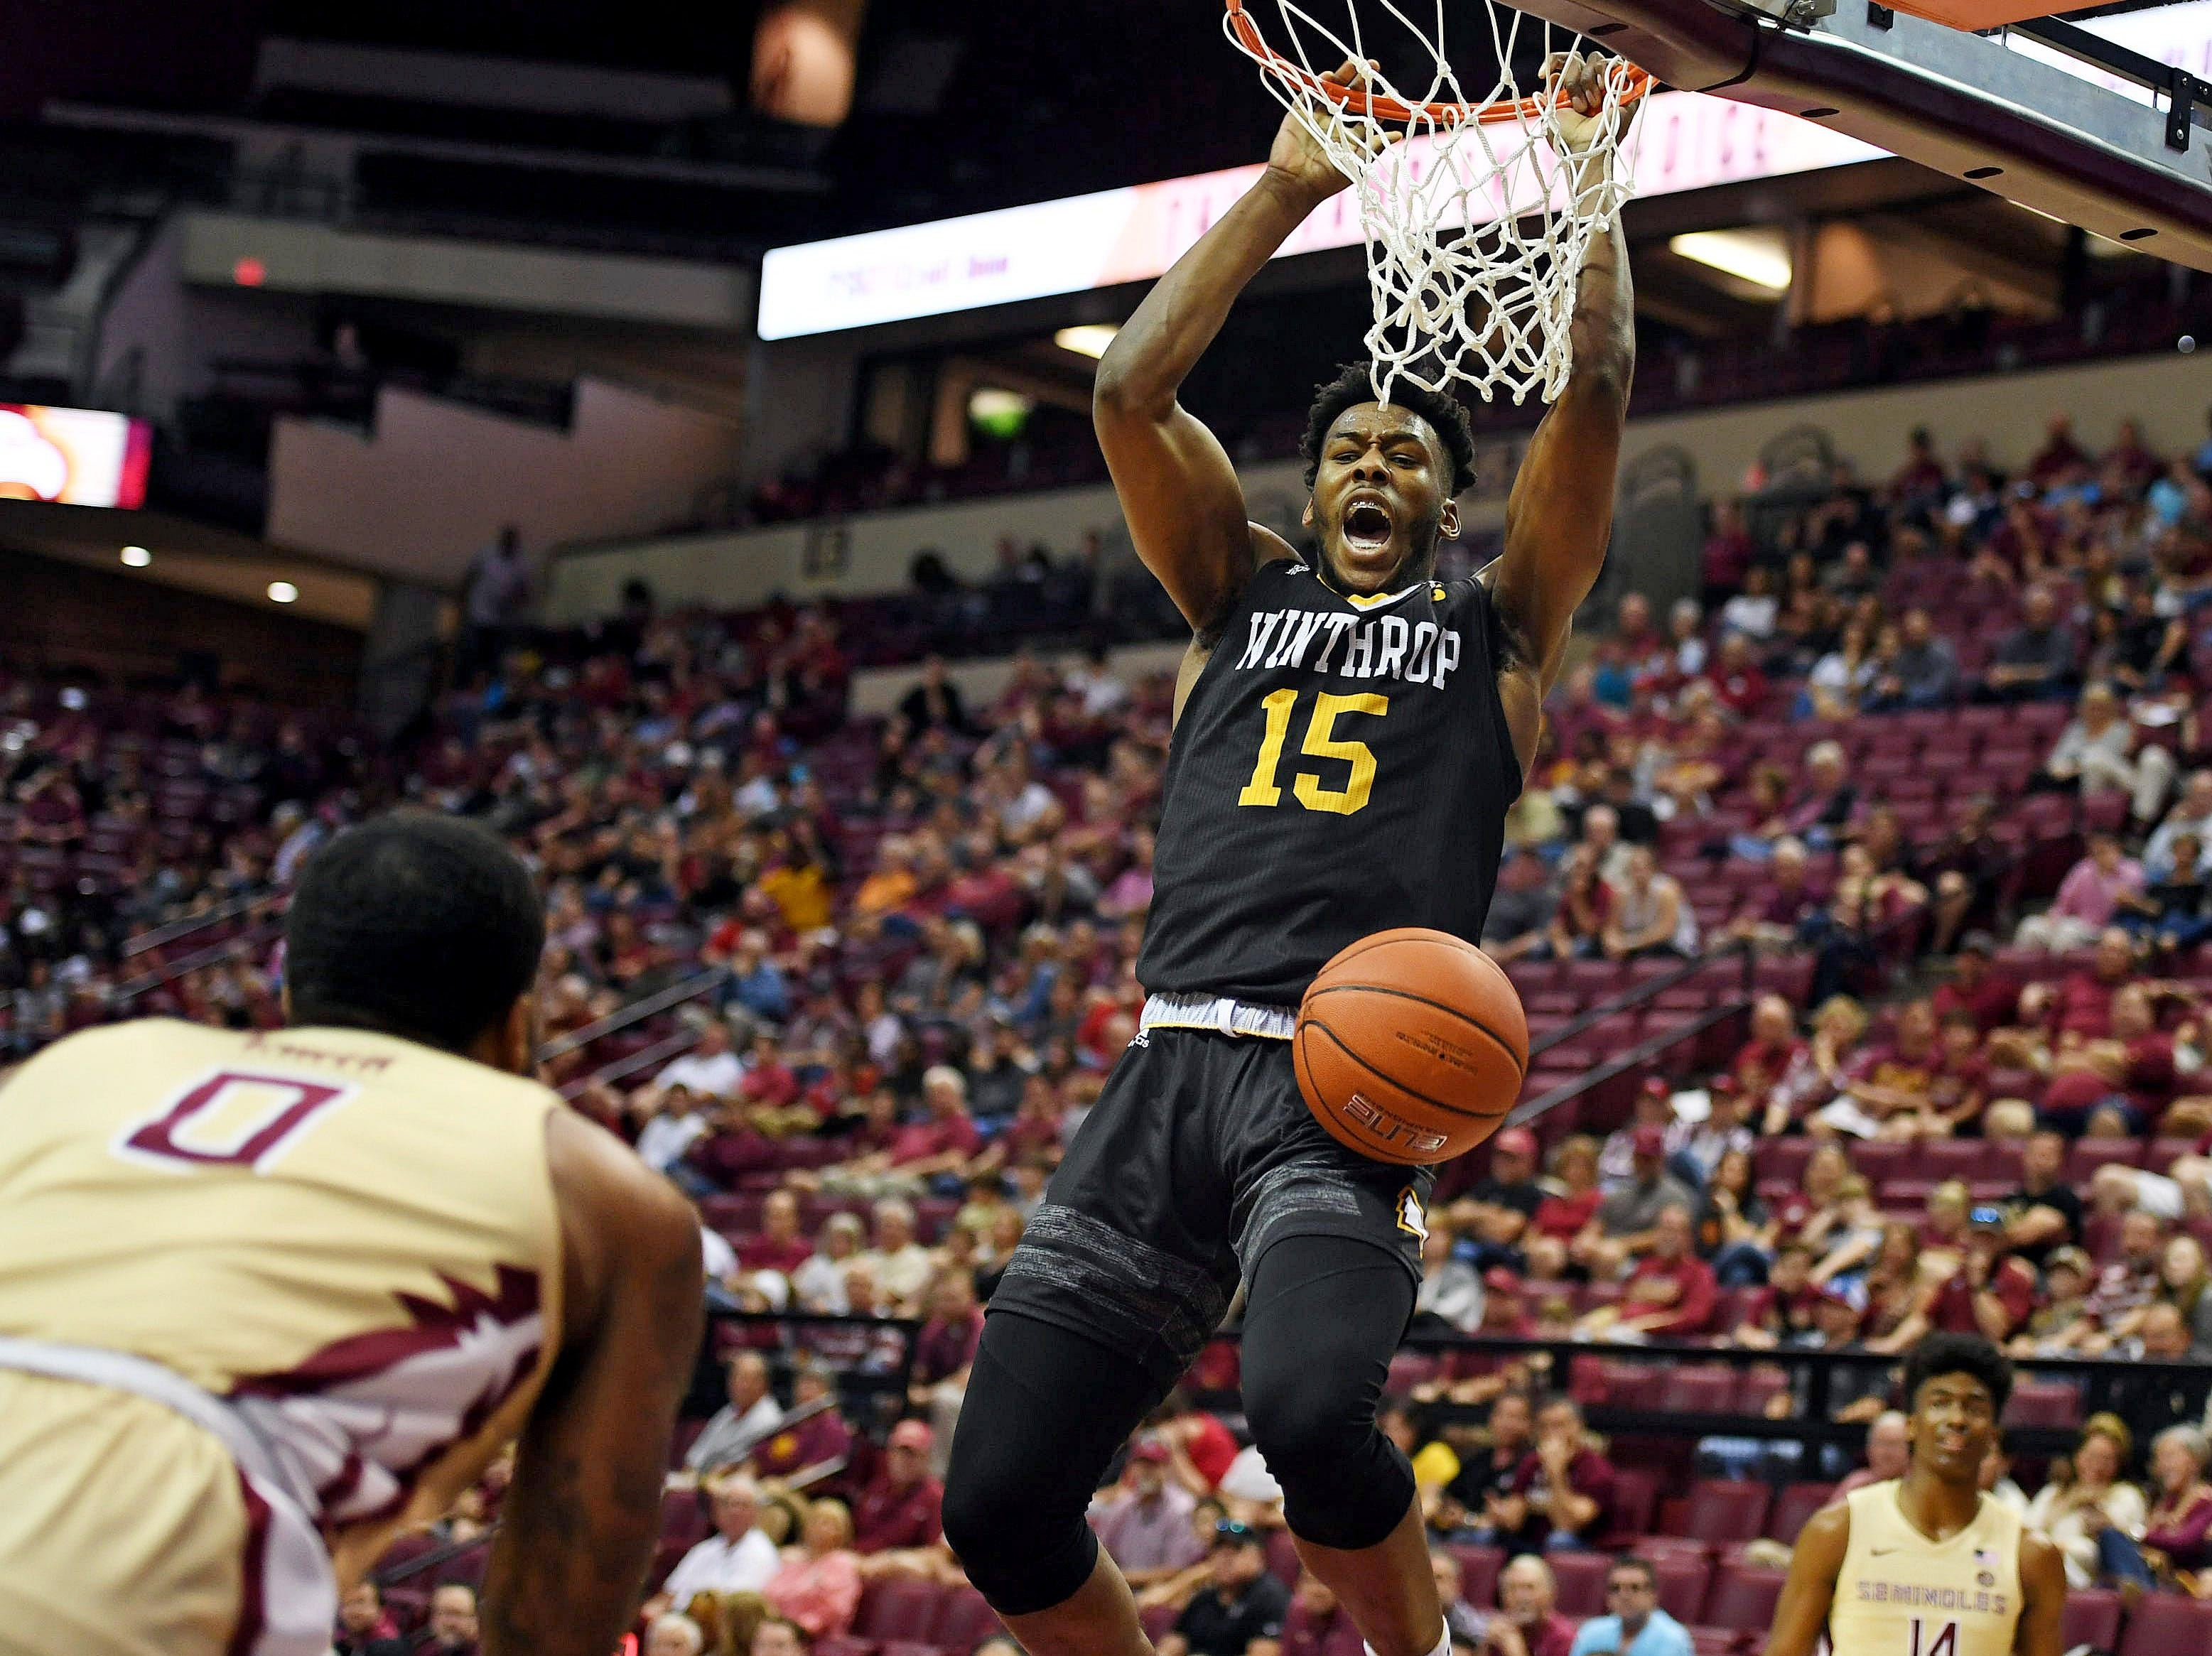 Jan 1, 2019; Tallahassee, FL, USA; Winthrop Eagles forward Jermaine Ukaegbu (15) dunks the ball during the first half of the game against the Florida State Seminoles at Donald L. Tucker Center. Mandatory Credit: Melina Myers-USA TODAY Sports